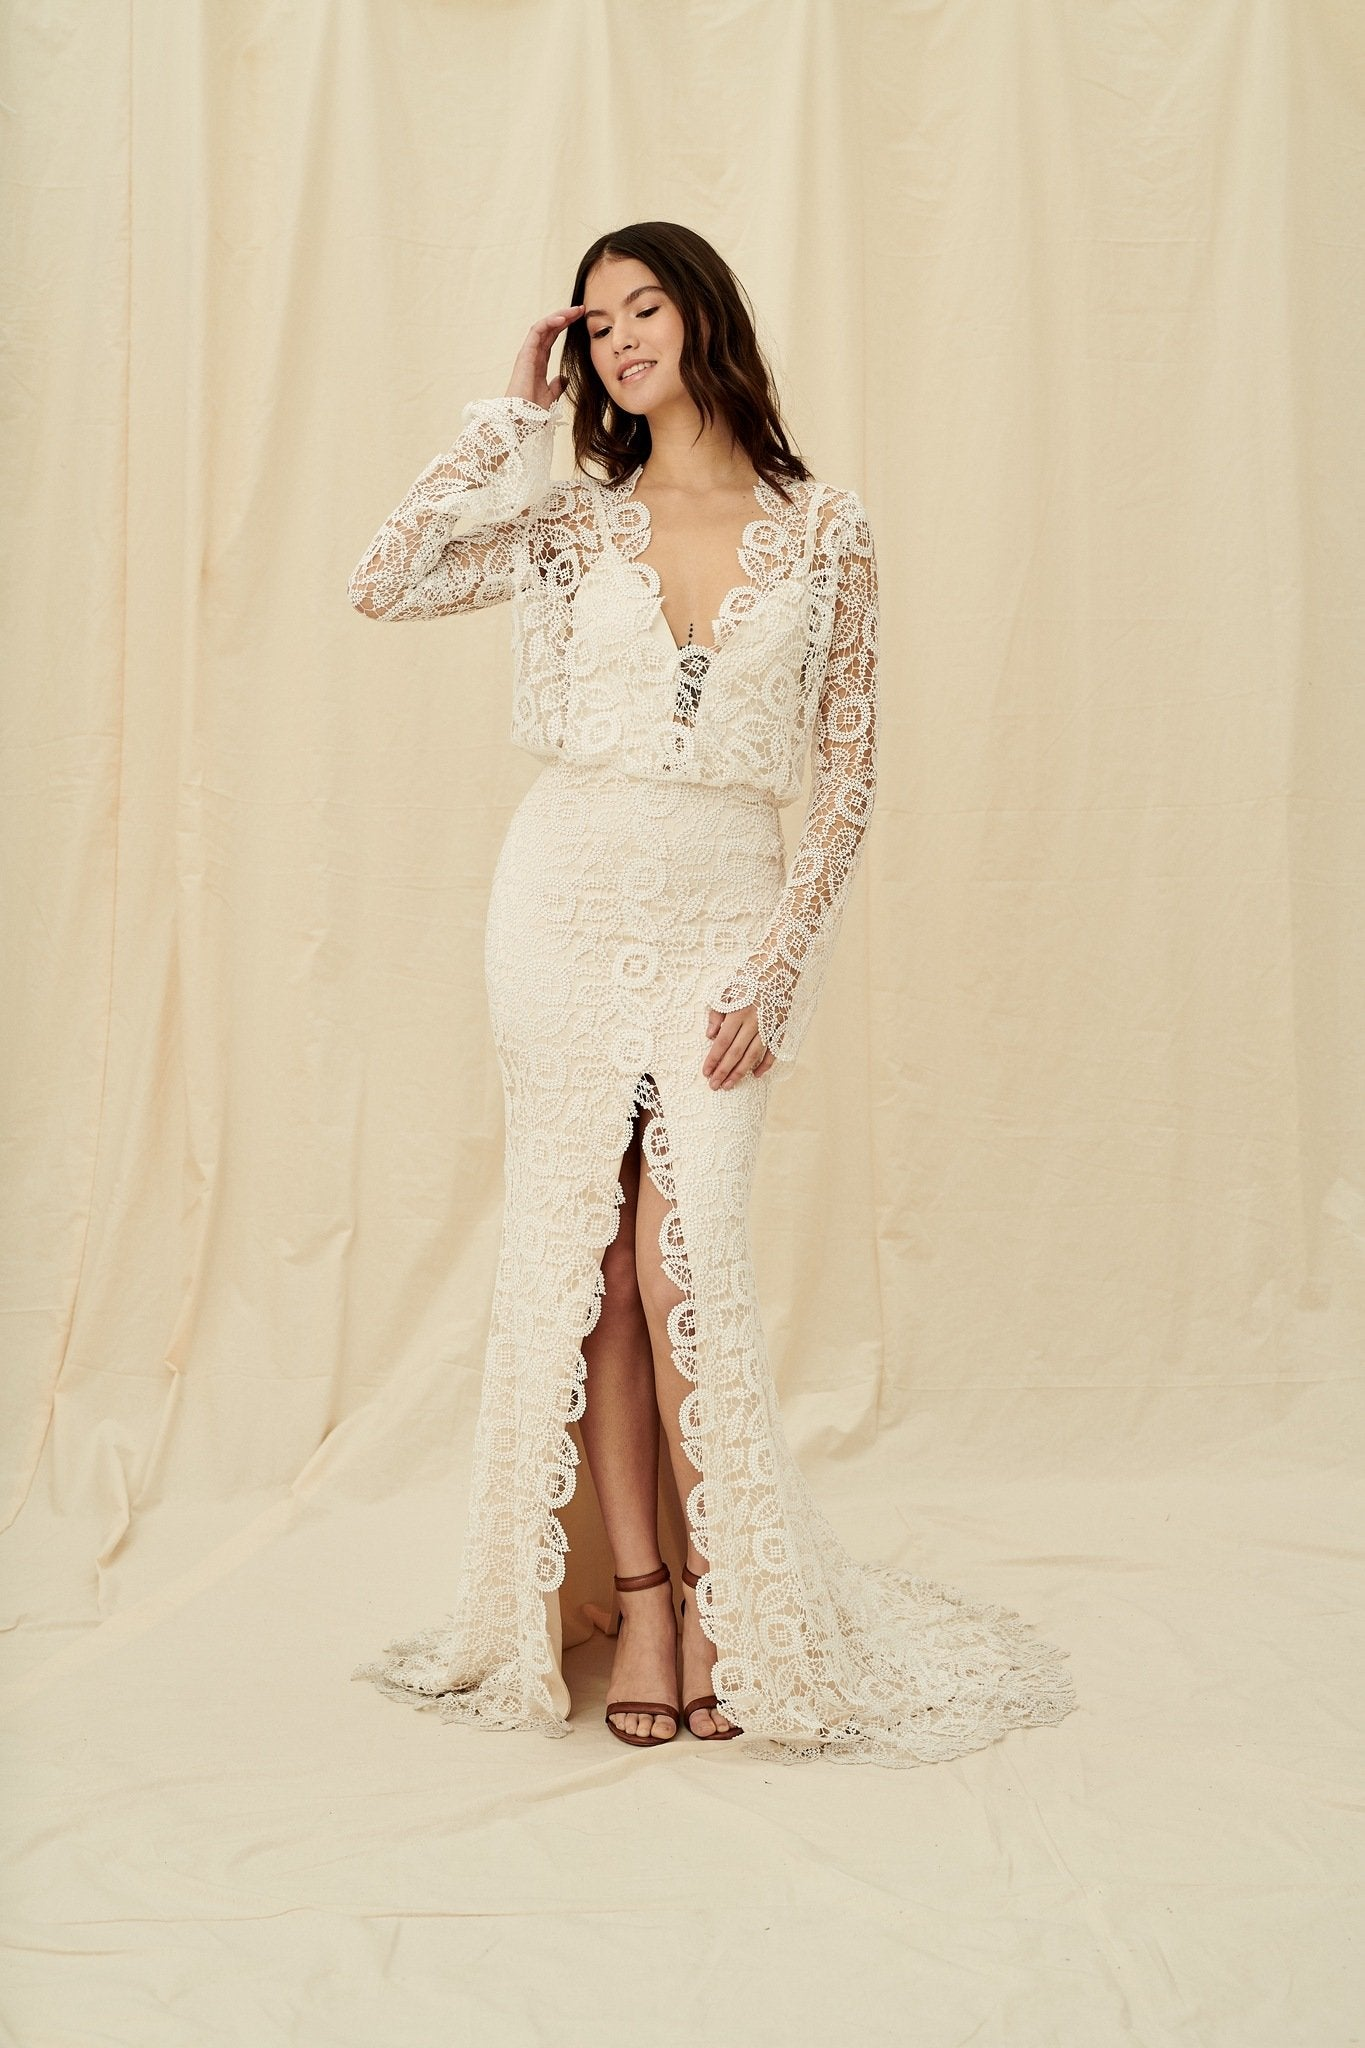 A boho mermaid dress with retro-inspired lace bell sleeves and a centre slit